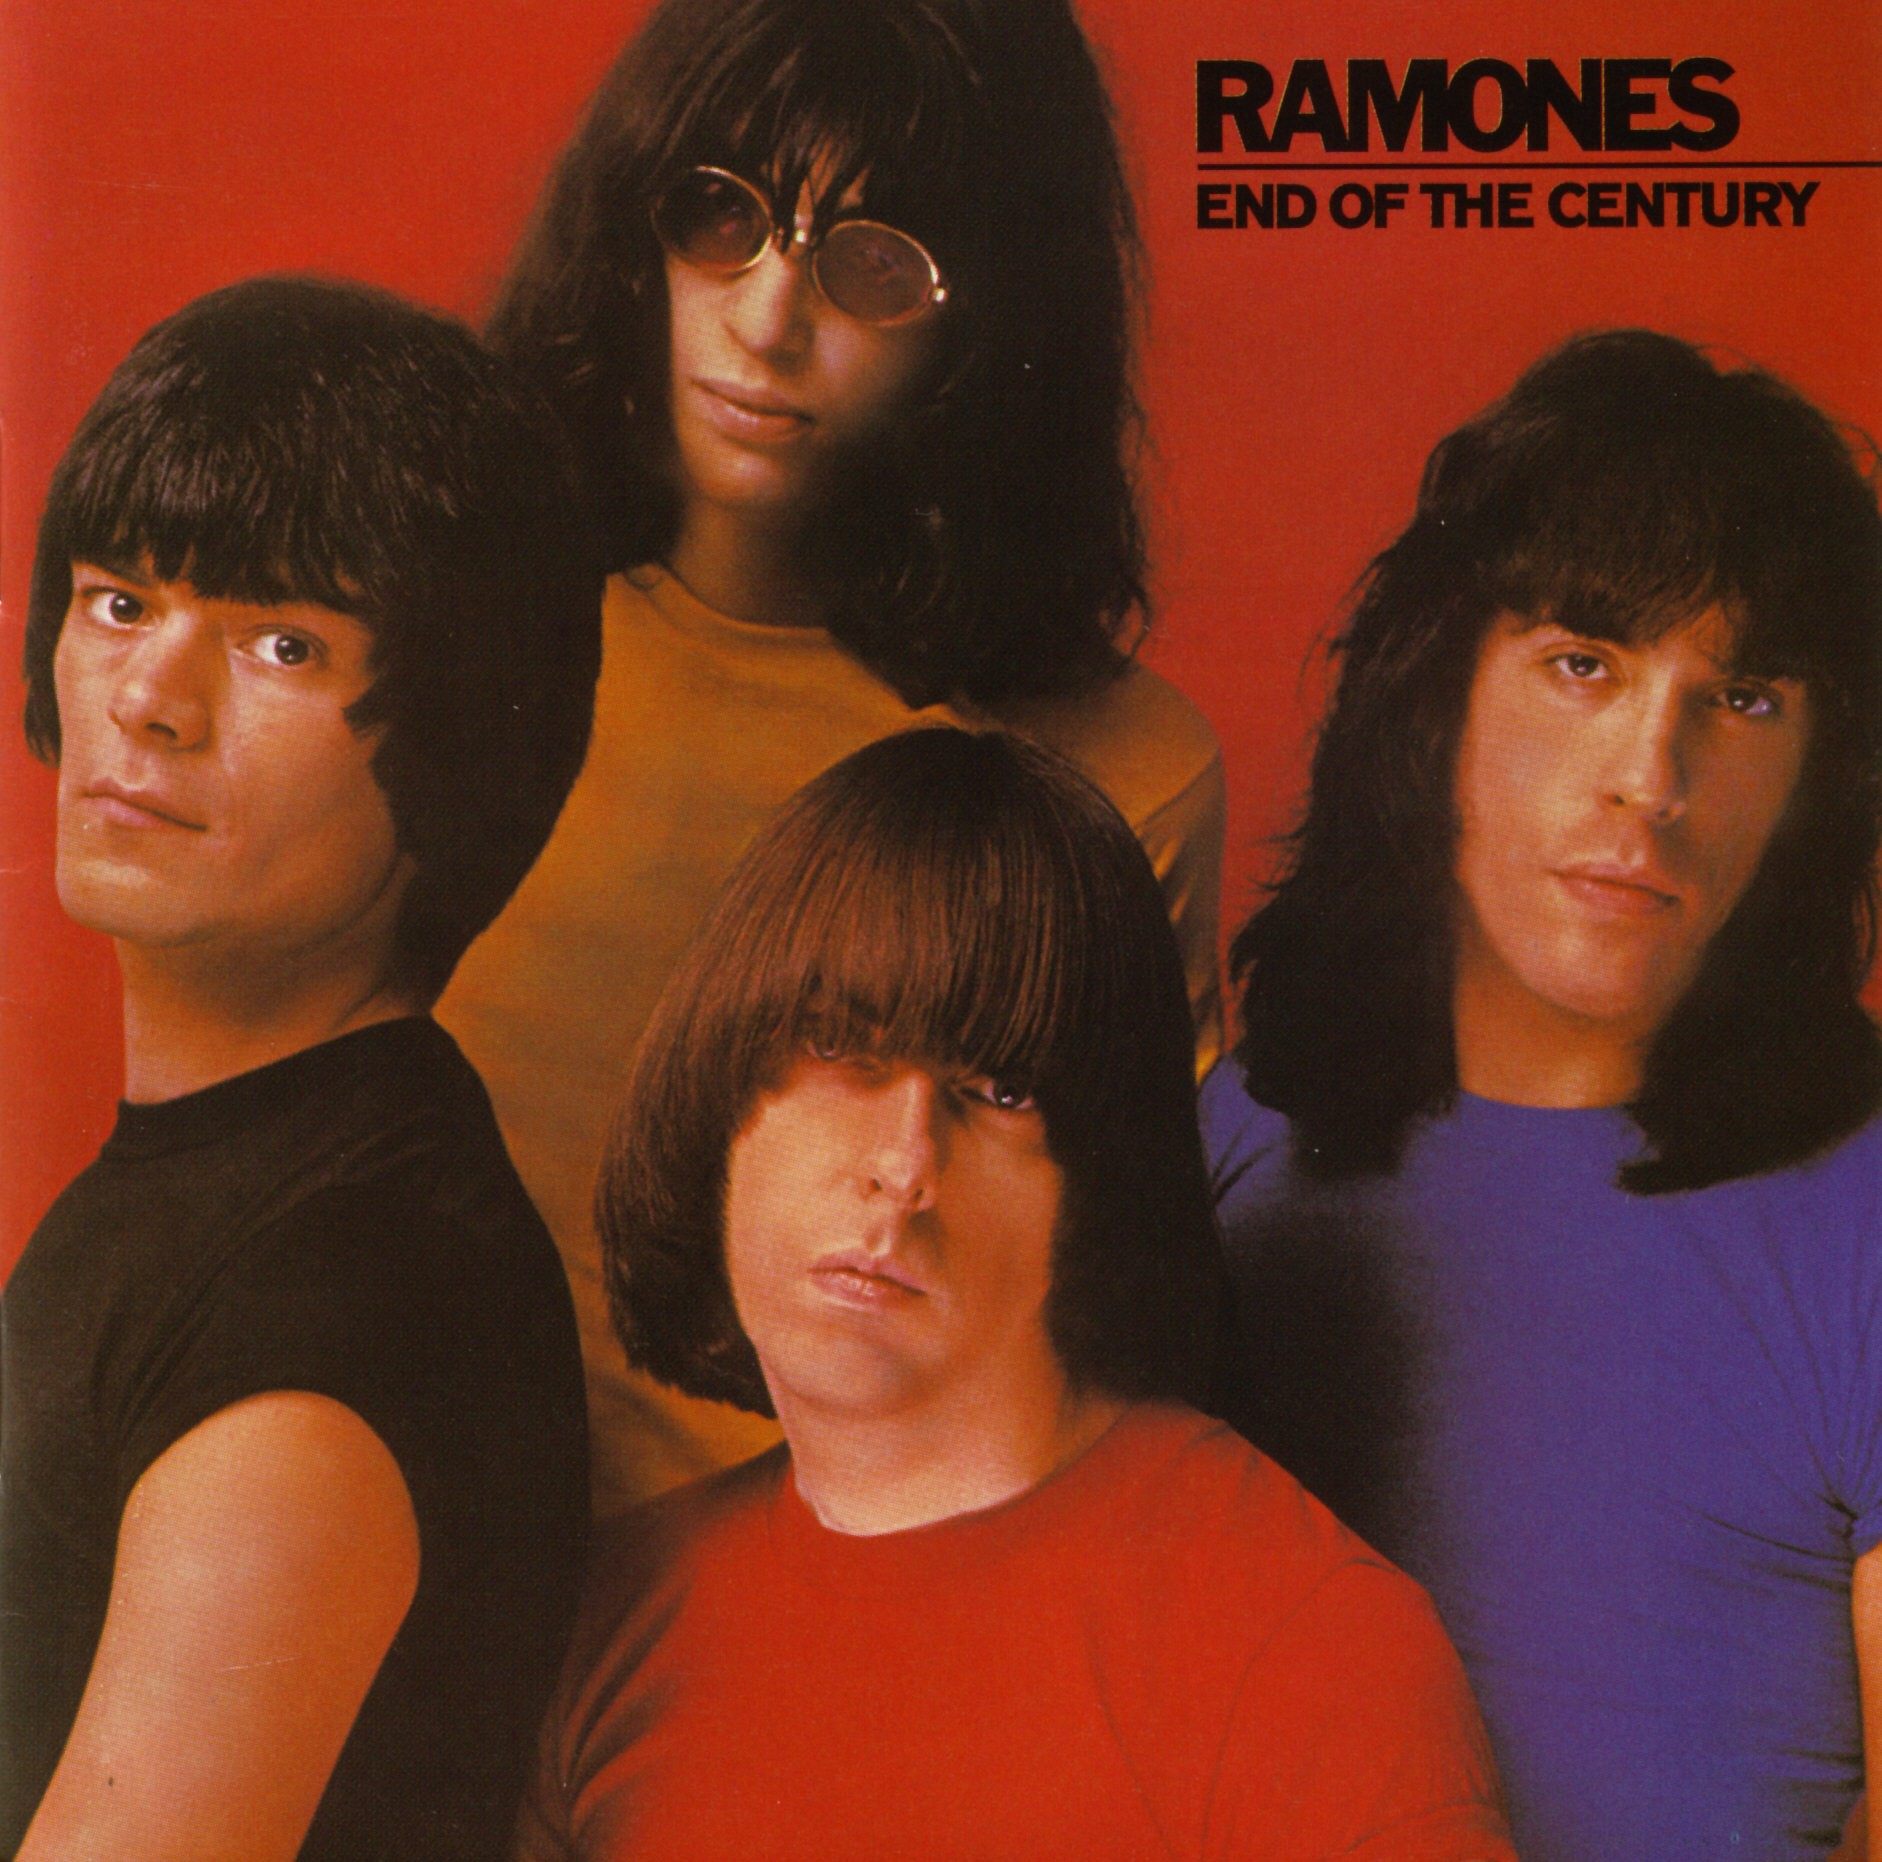 Ramones | End of the Century | 1980